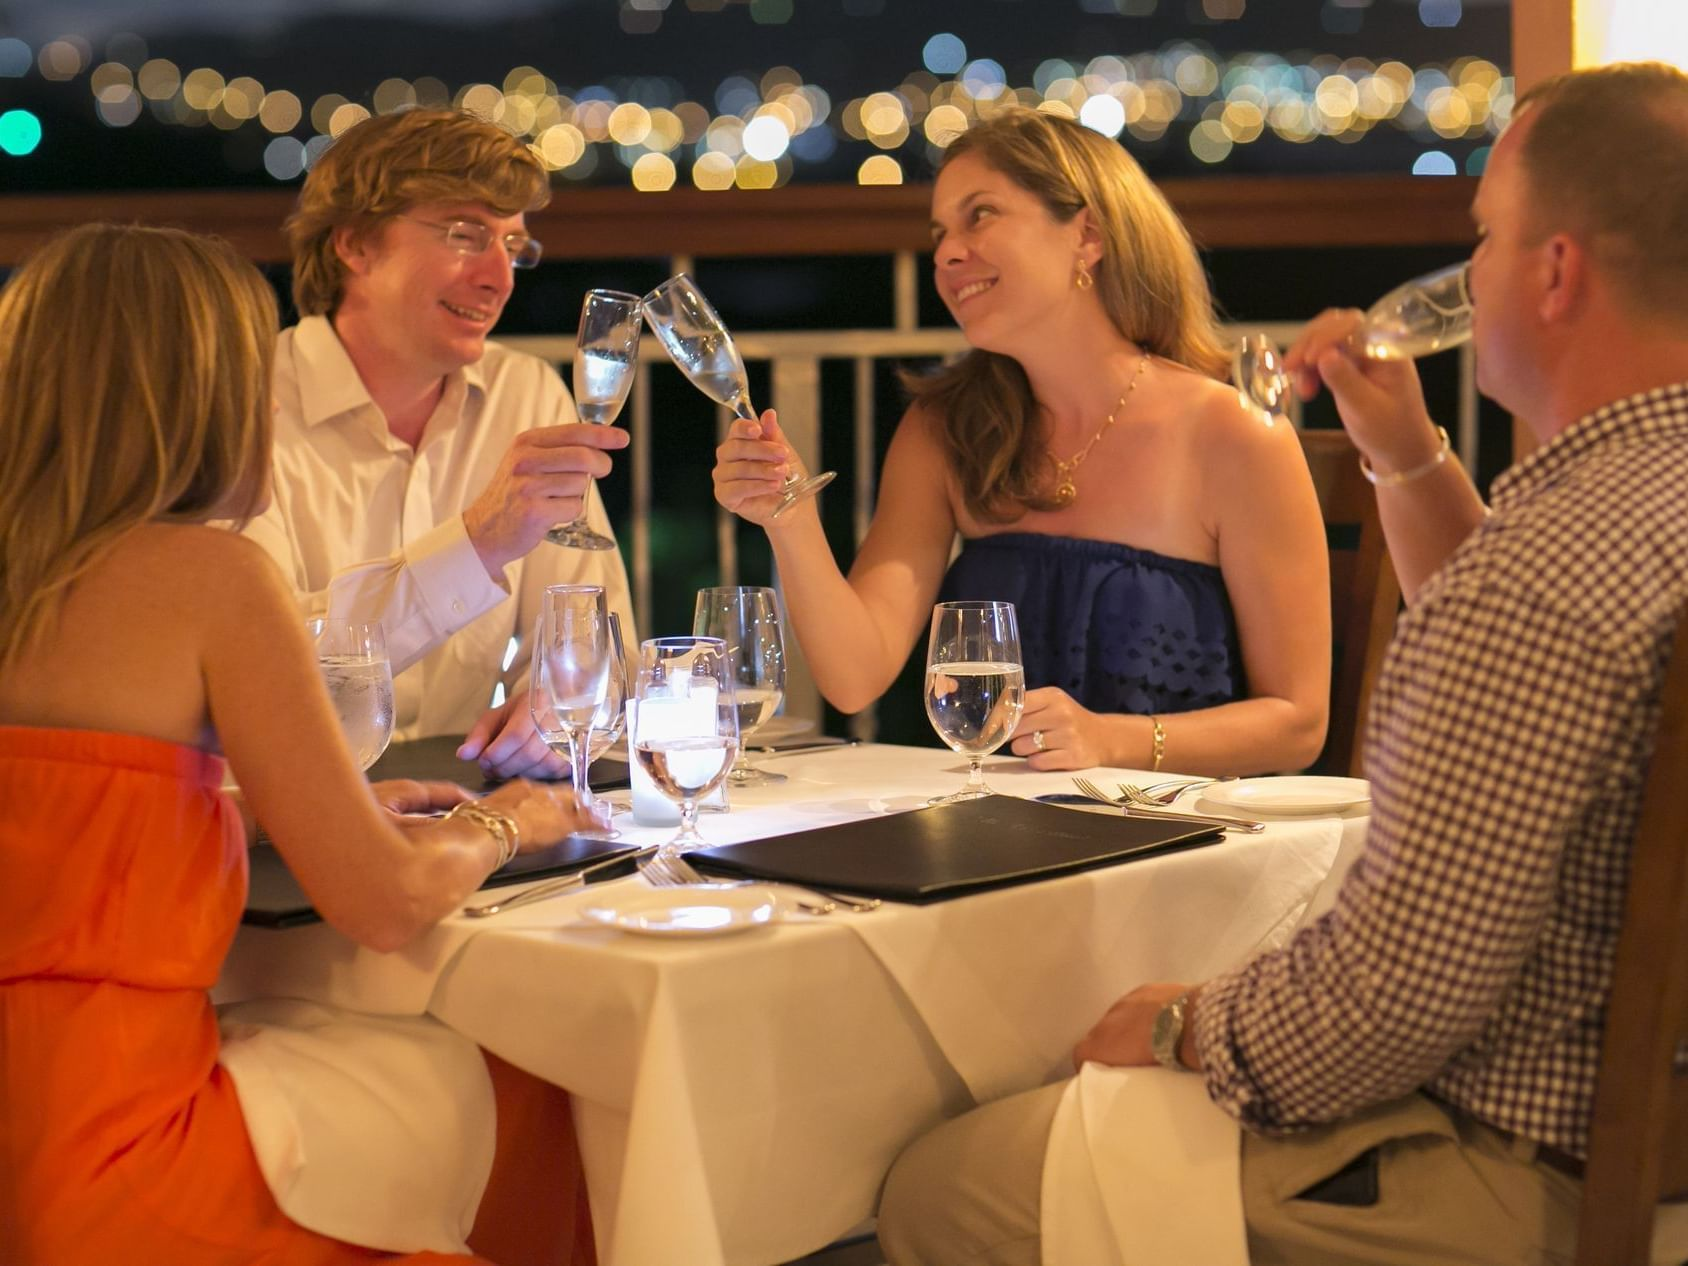 Two Couples Dining Outdoors